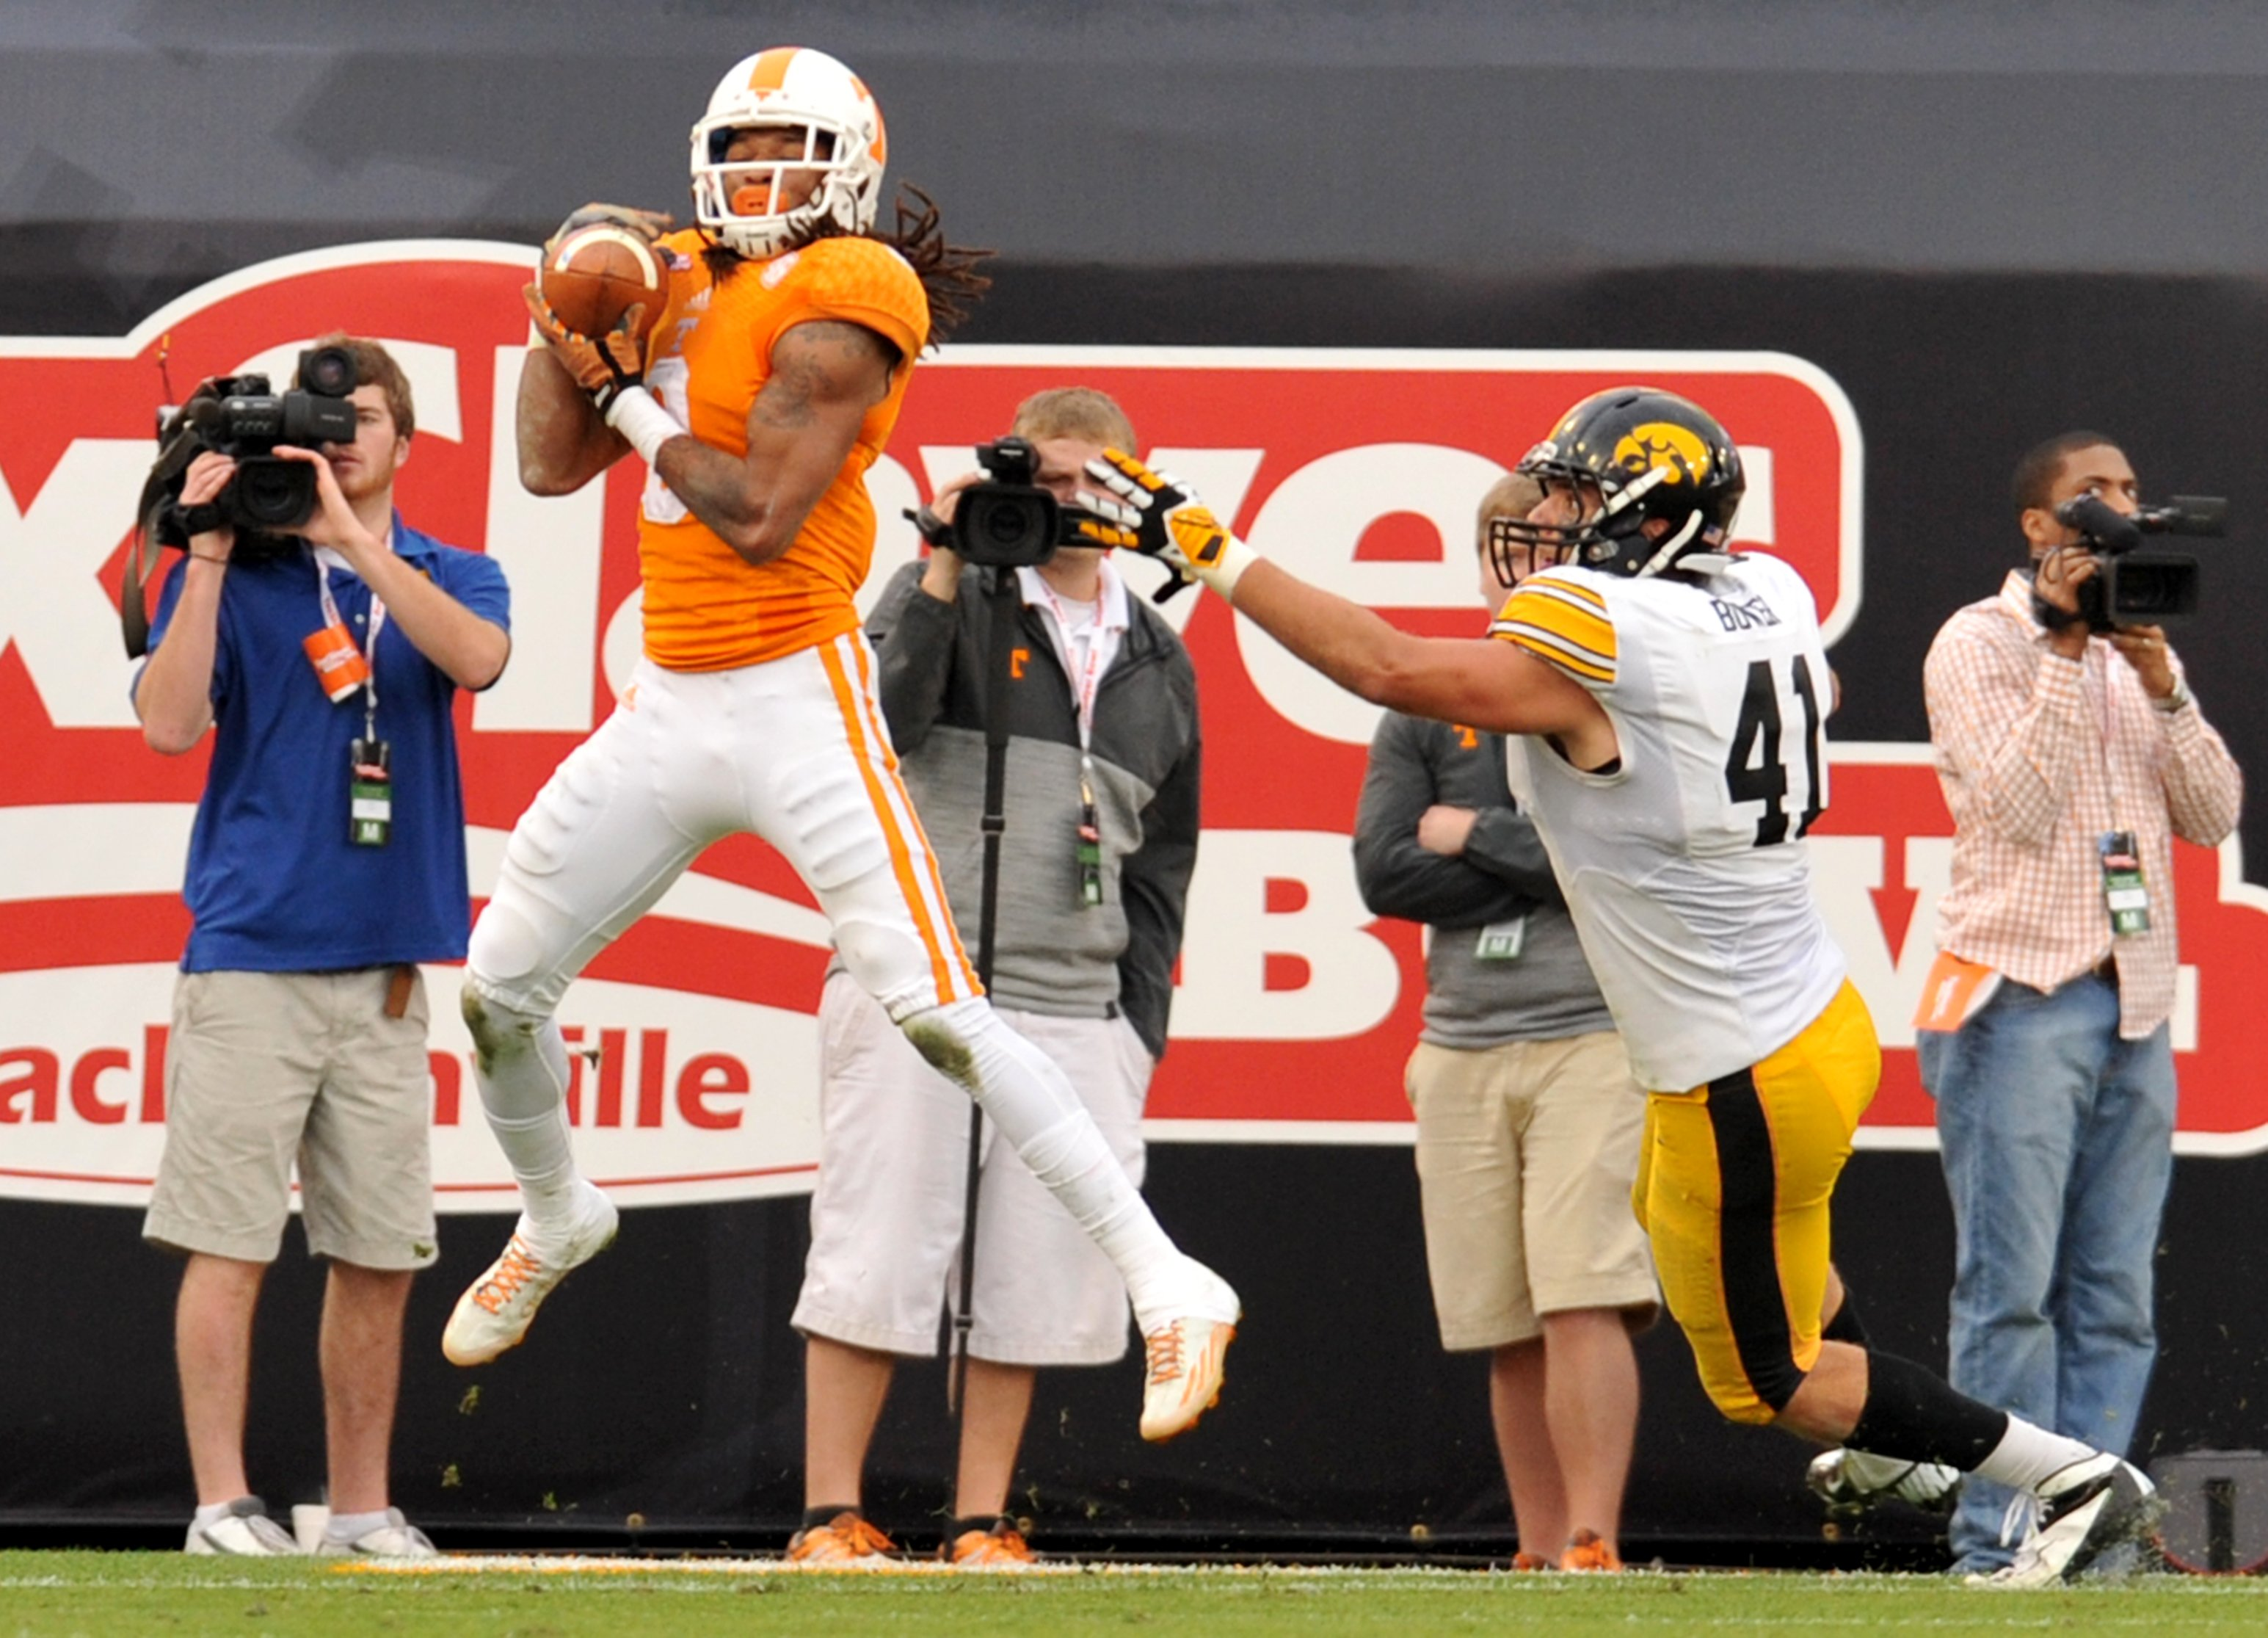 Tennessee's Von Pearson, left, pulls in a touchdown pass during the first half of the TaxSlayer Bowl NCAA college football game against Iowa, Friday, Jan. 2, 2015, in Jacksonville, Fla. (AP Photo/The Florida Times-Union, Bob Self)